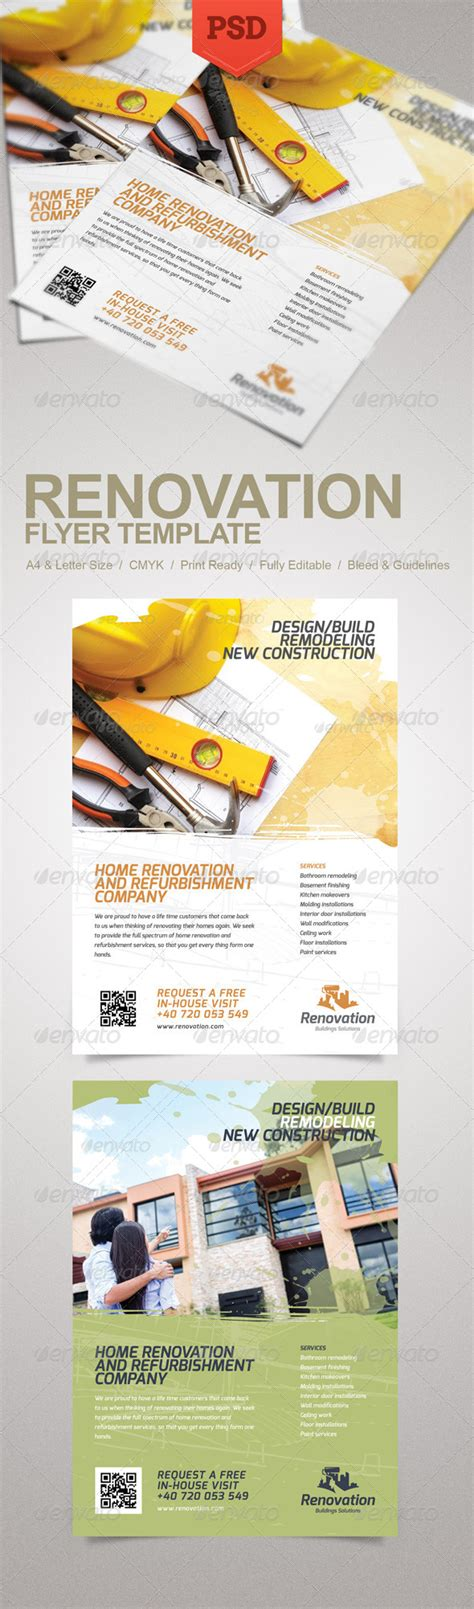 creative flyer design graphicriver renovation flyer graphicriver